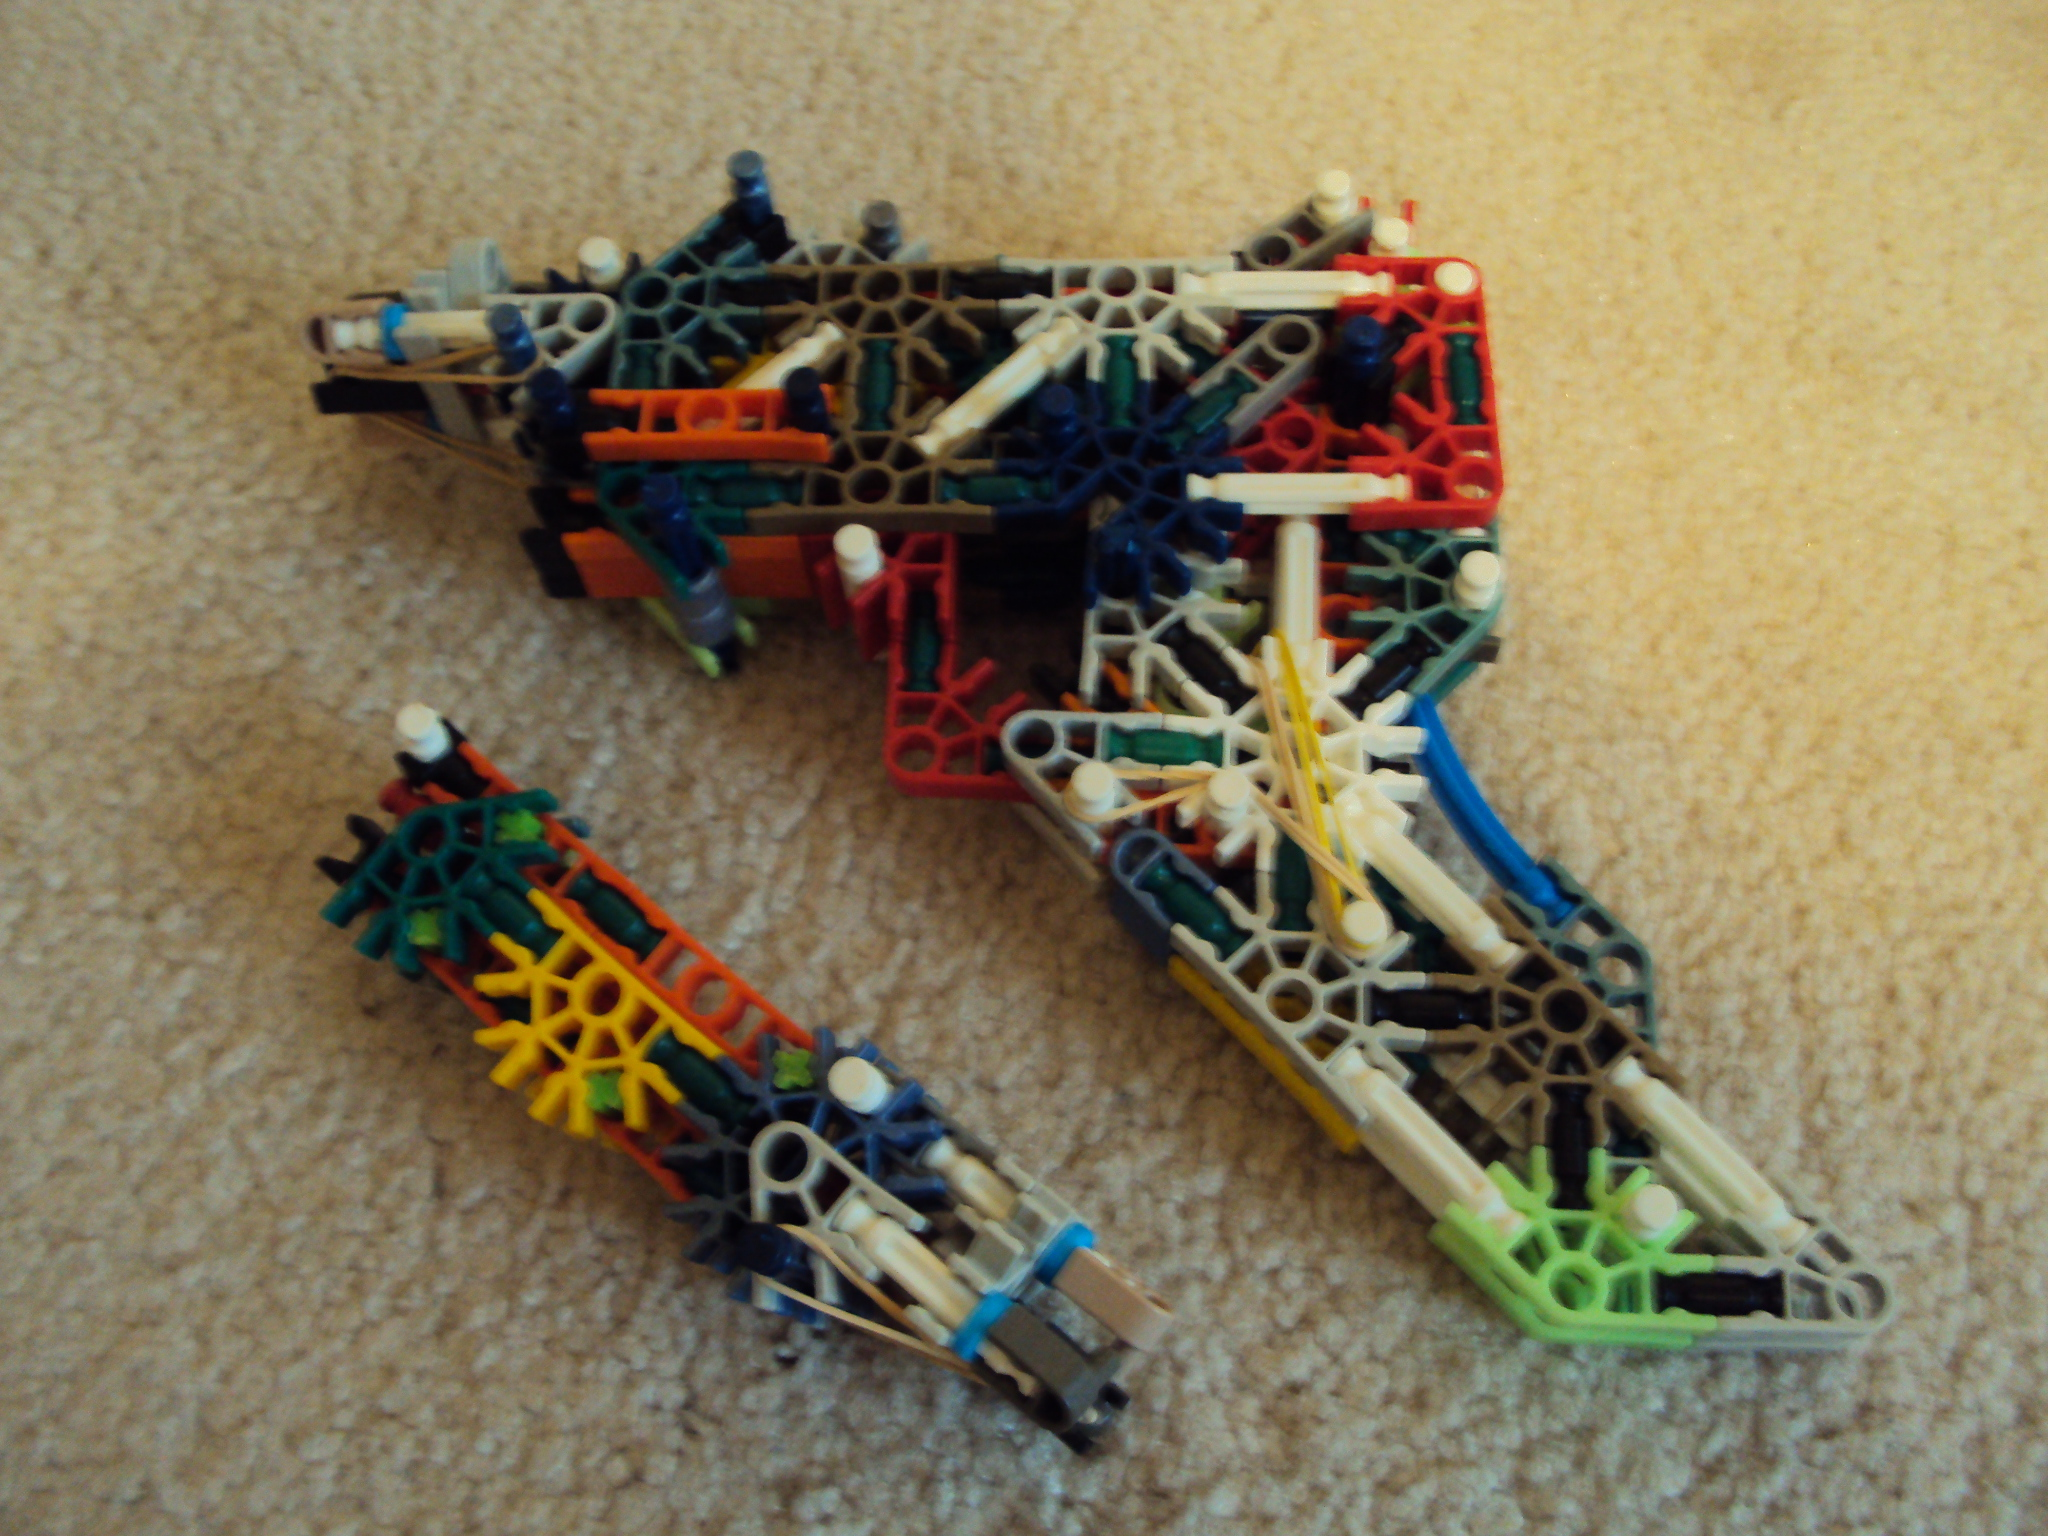 Picture of Knex Semi Auto Pistol With Removable Mag